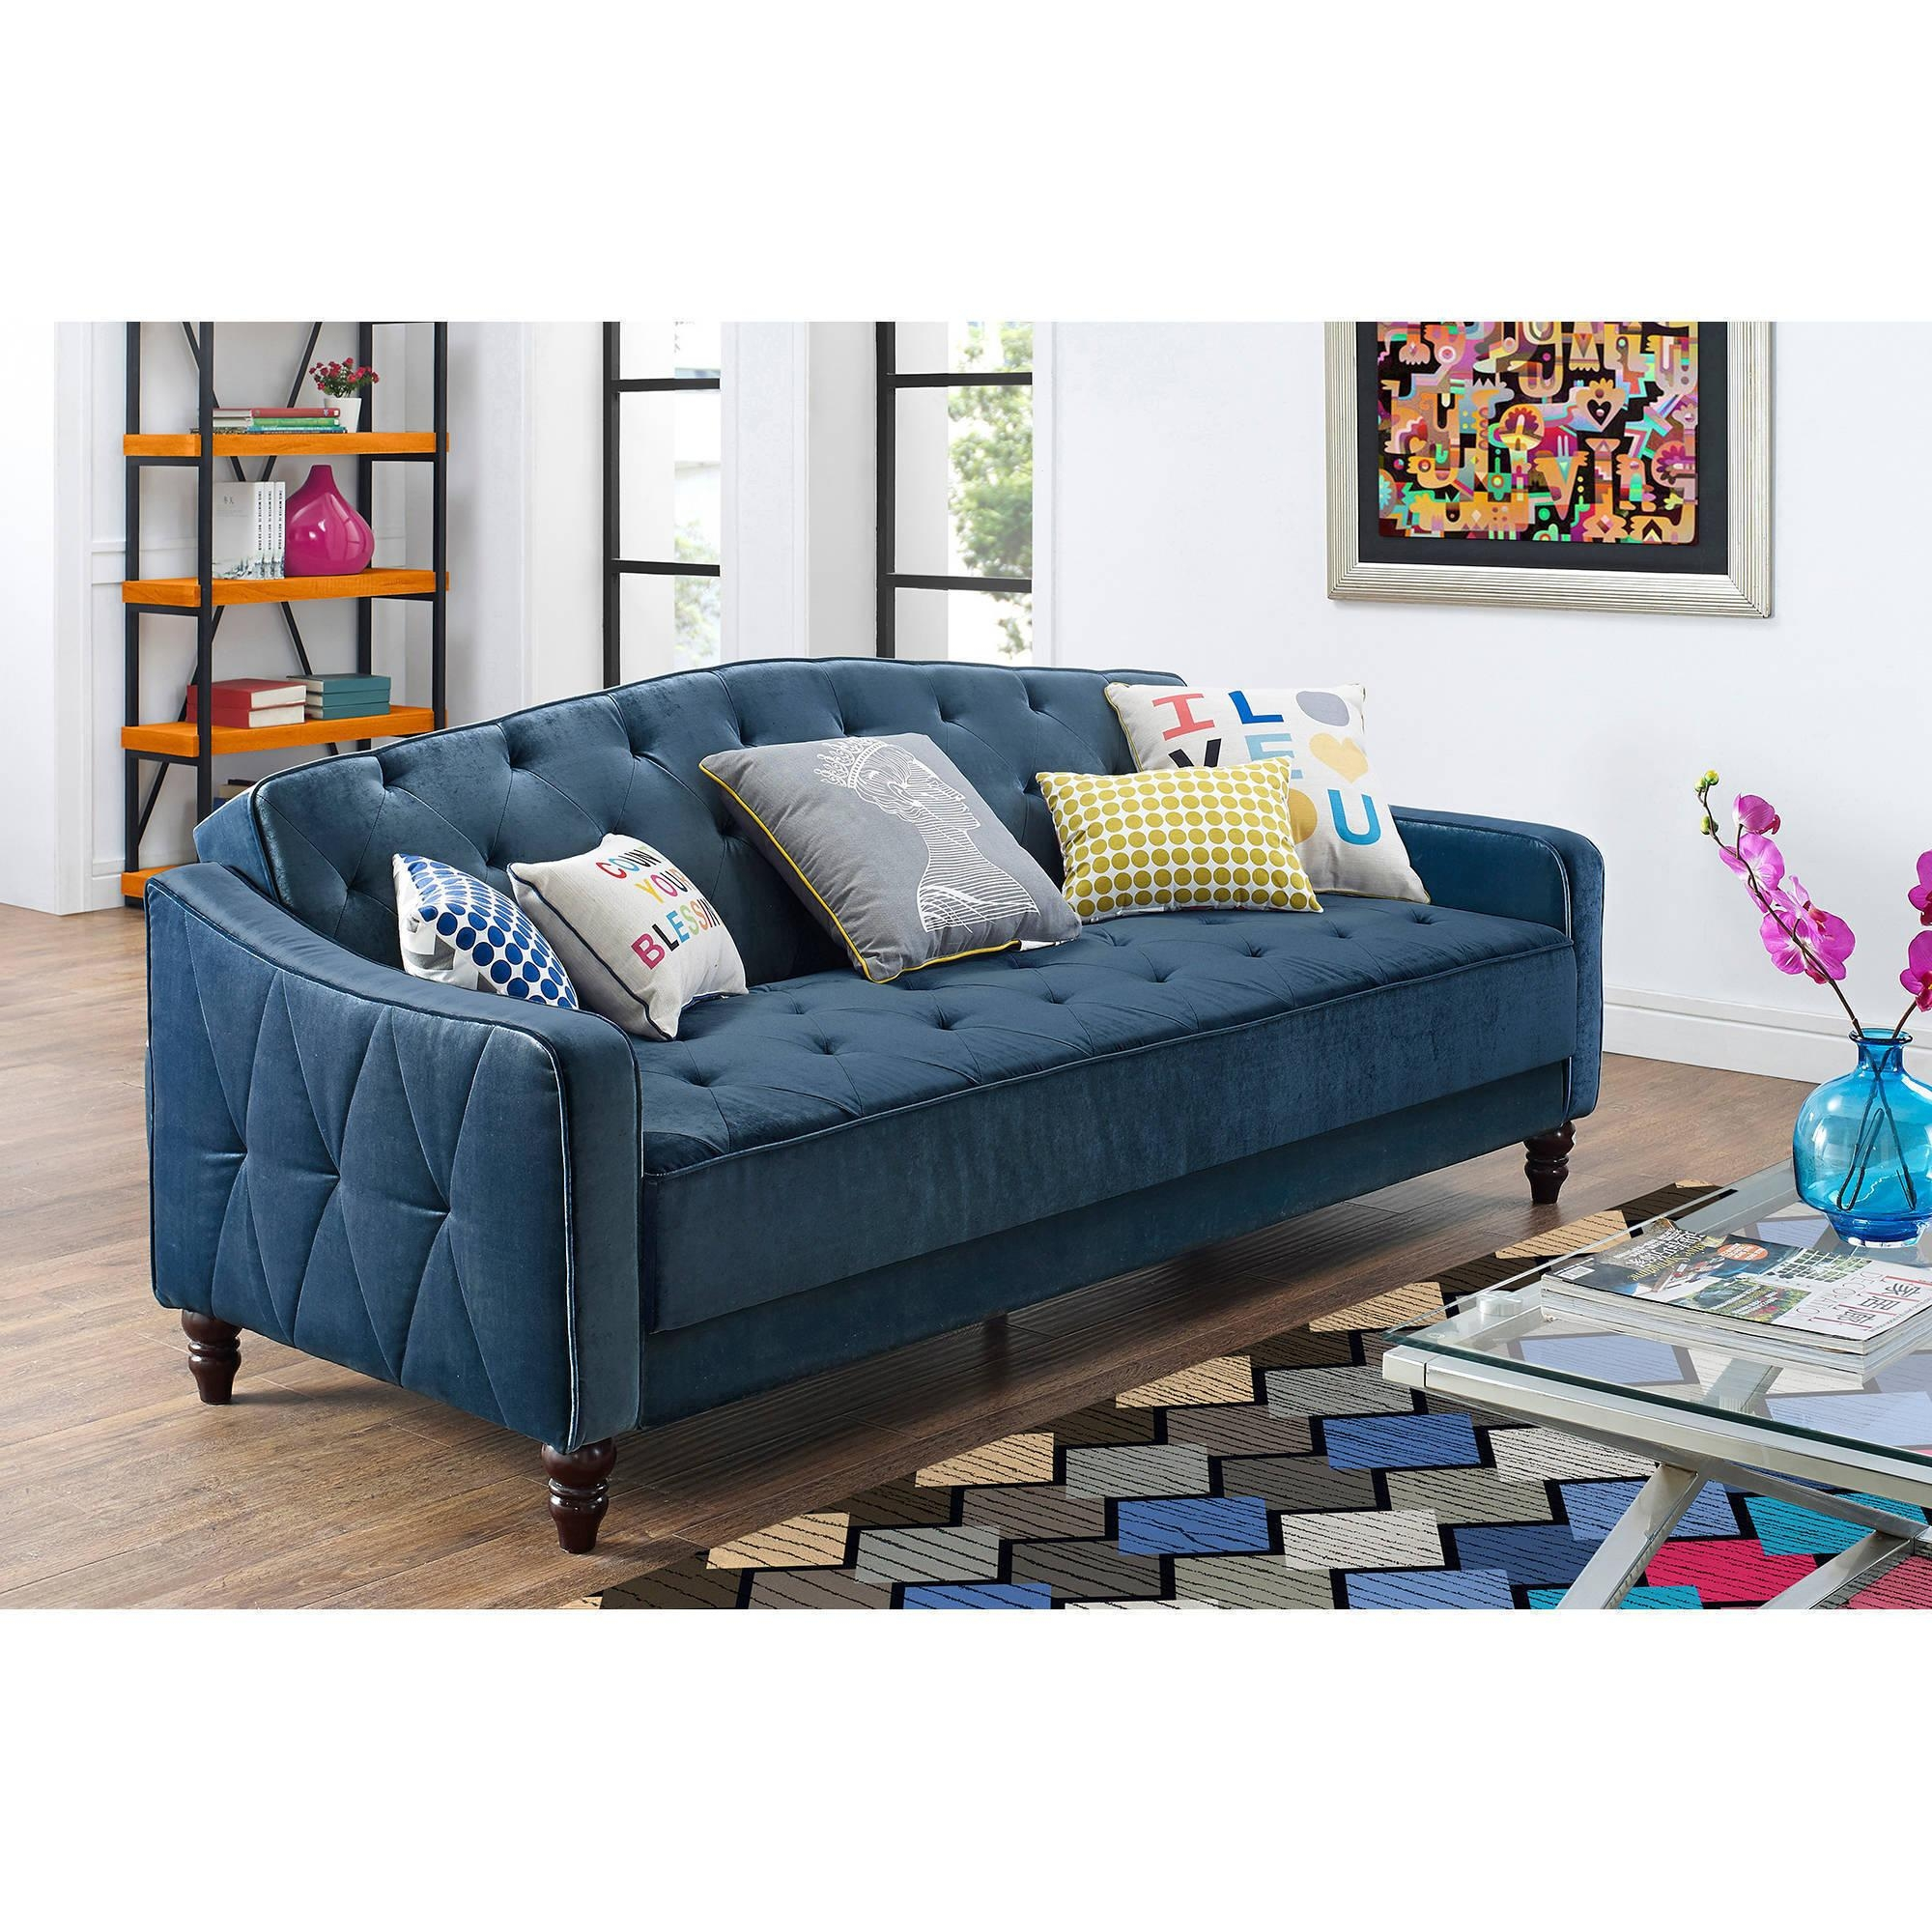 Futons, Futon Beds, Sofa Beds – Walmart For Grey Sofa Chairs (Image 10 of 20)